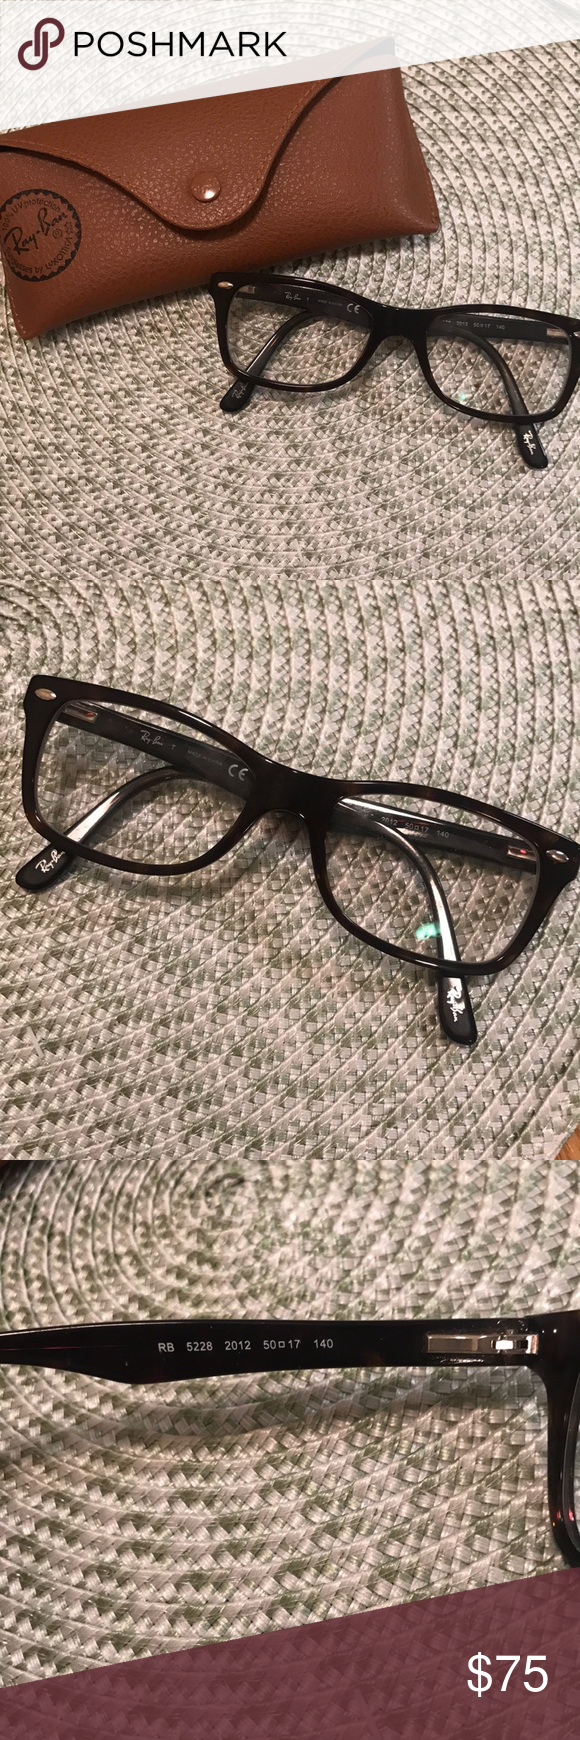 a43b9b222c9 Ray Ban Eyeglasses Frames Excellent used condition